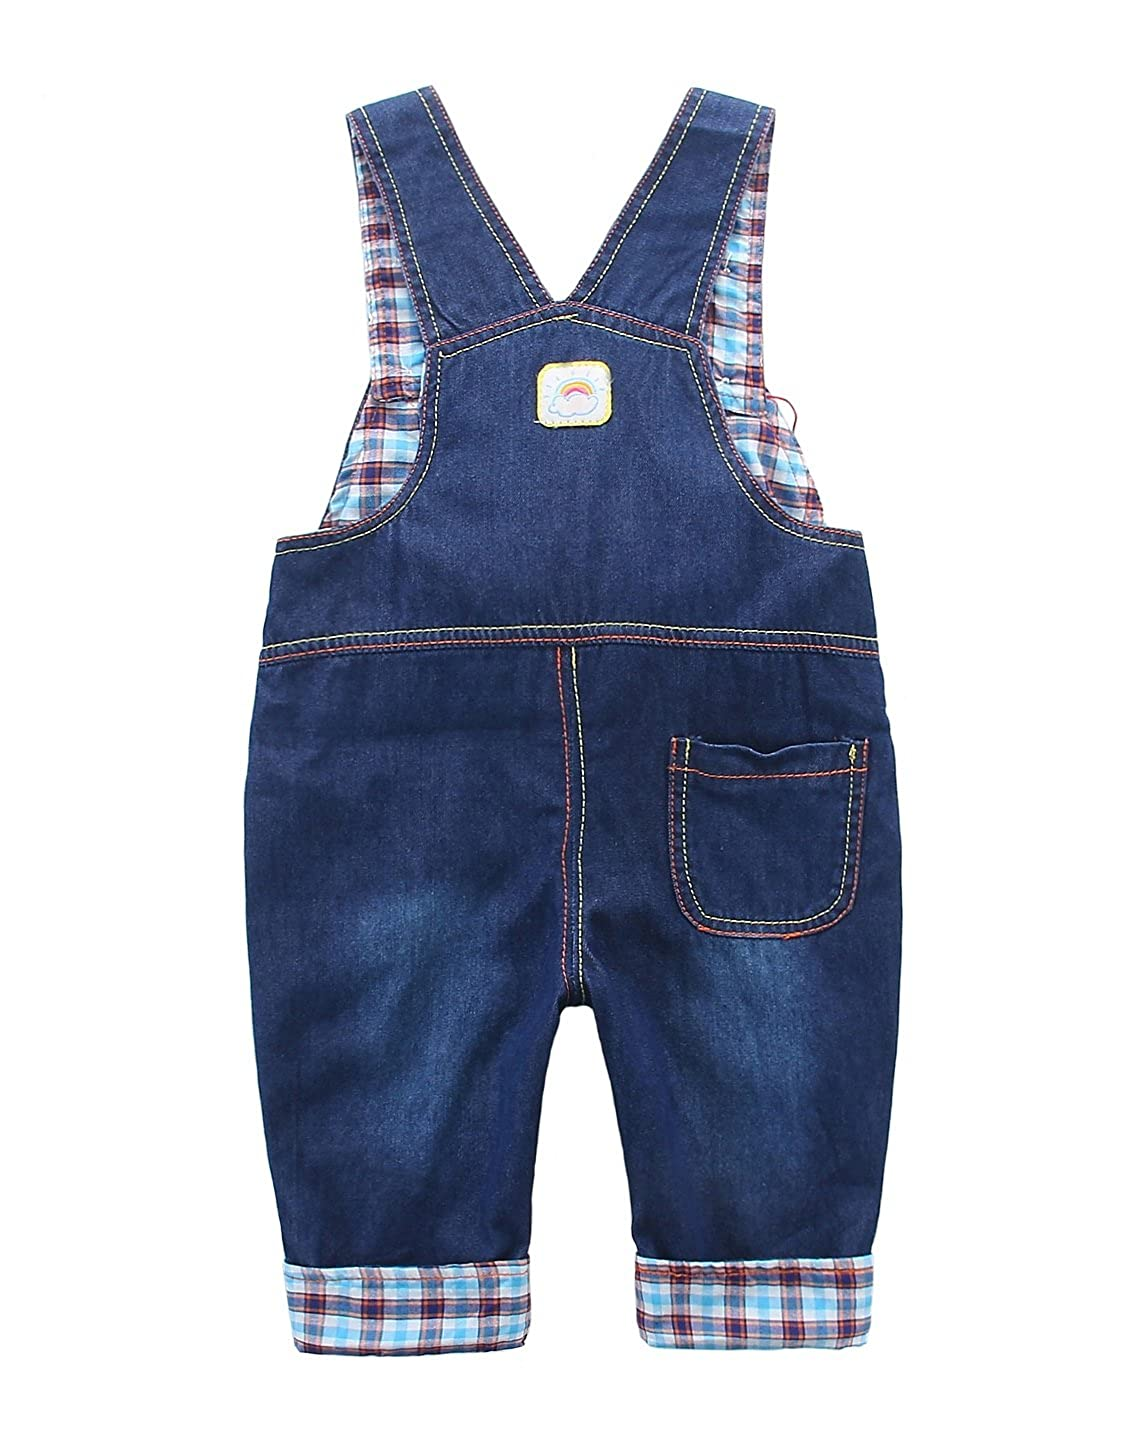 Baby boys girls Plaid Lining Denim Overalls Newborn Dungarees Jumpsuit Monkey with Banana Pattern Blue